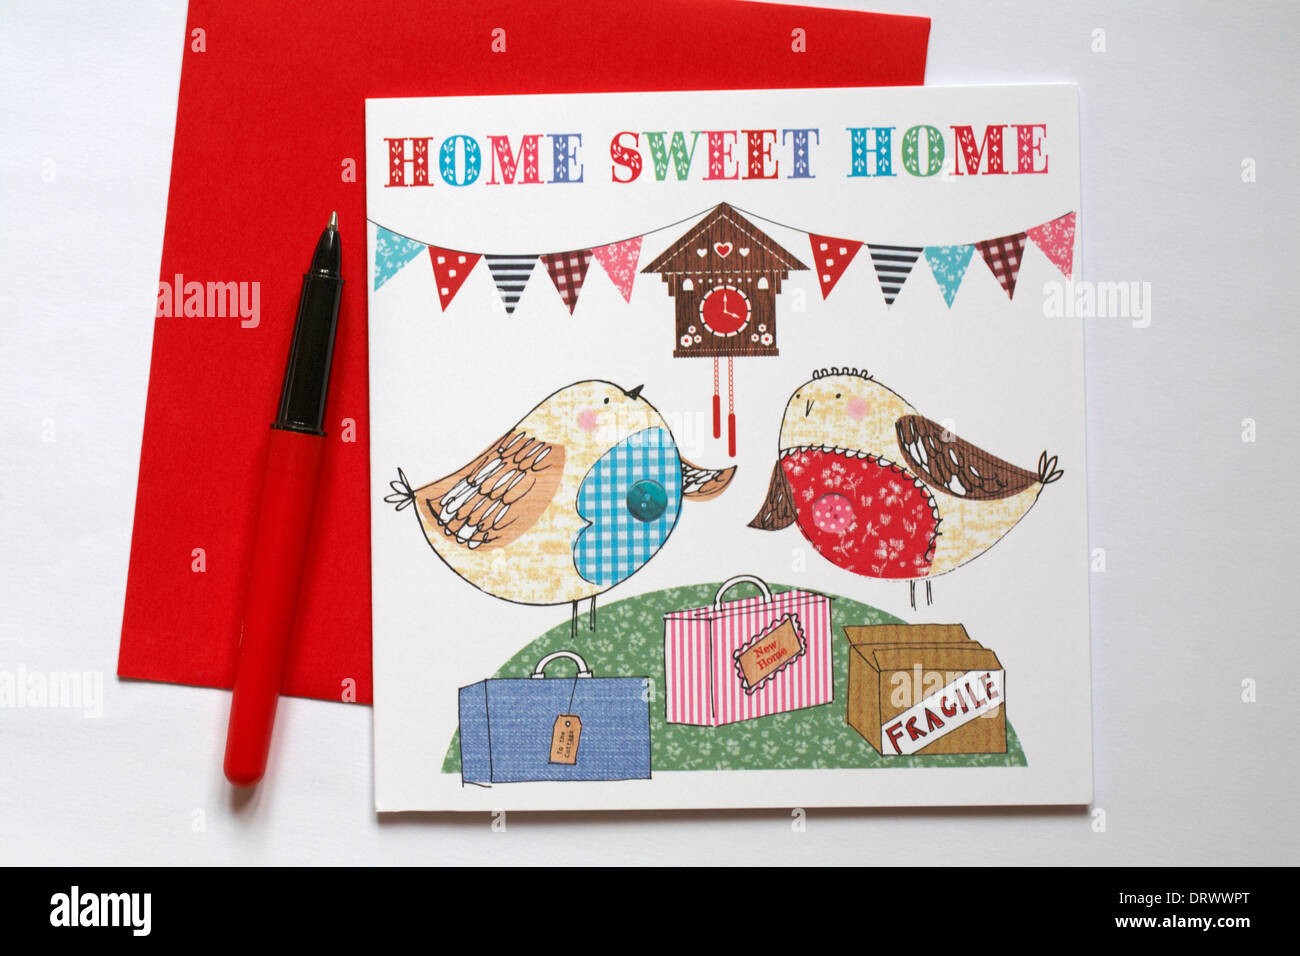 Home sweet home card with pen and red envelope set on white background - Stock Image